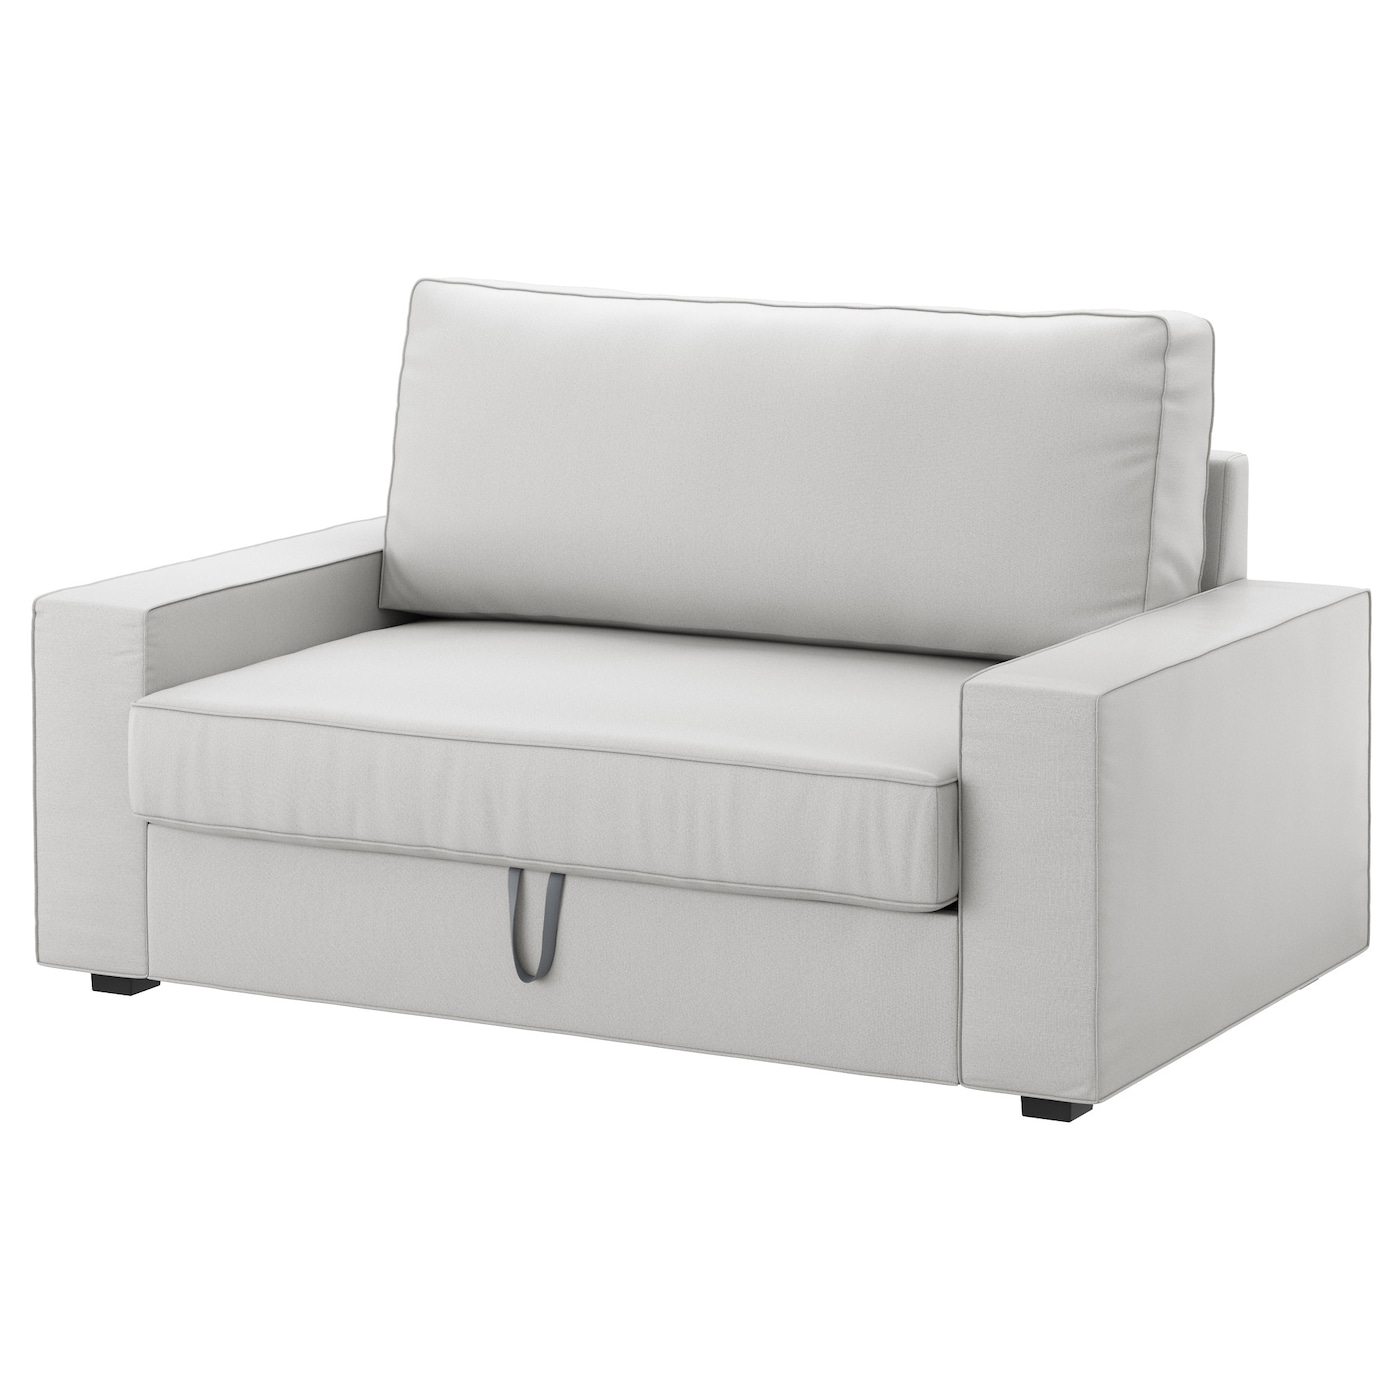 Vilasund two seat sofa bed ramna light grey ikea for Liquidacion sofas cama